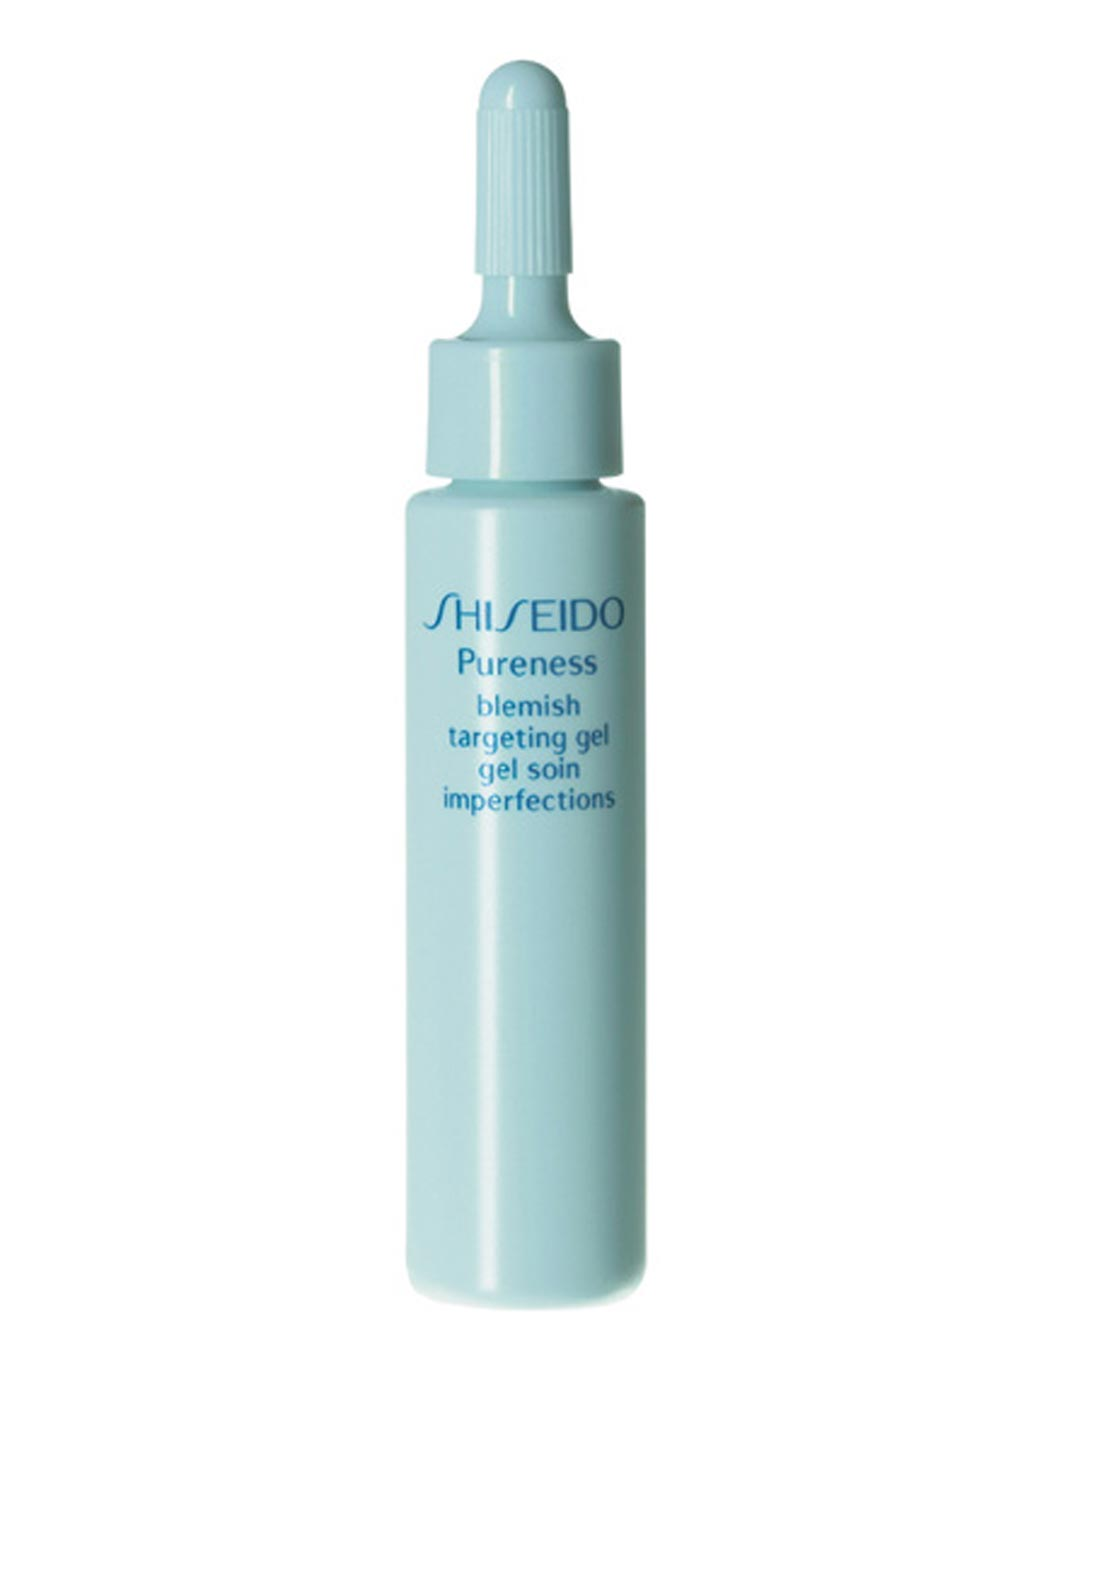 Shiseido Pureness Blemish Targeting Gel, 15ml